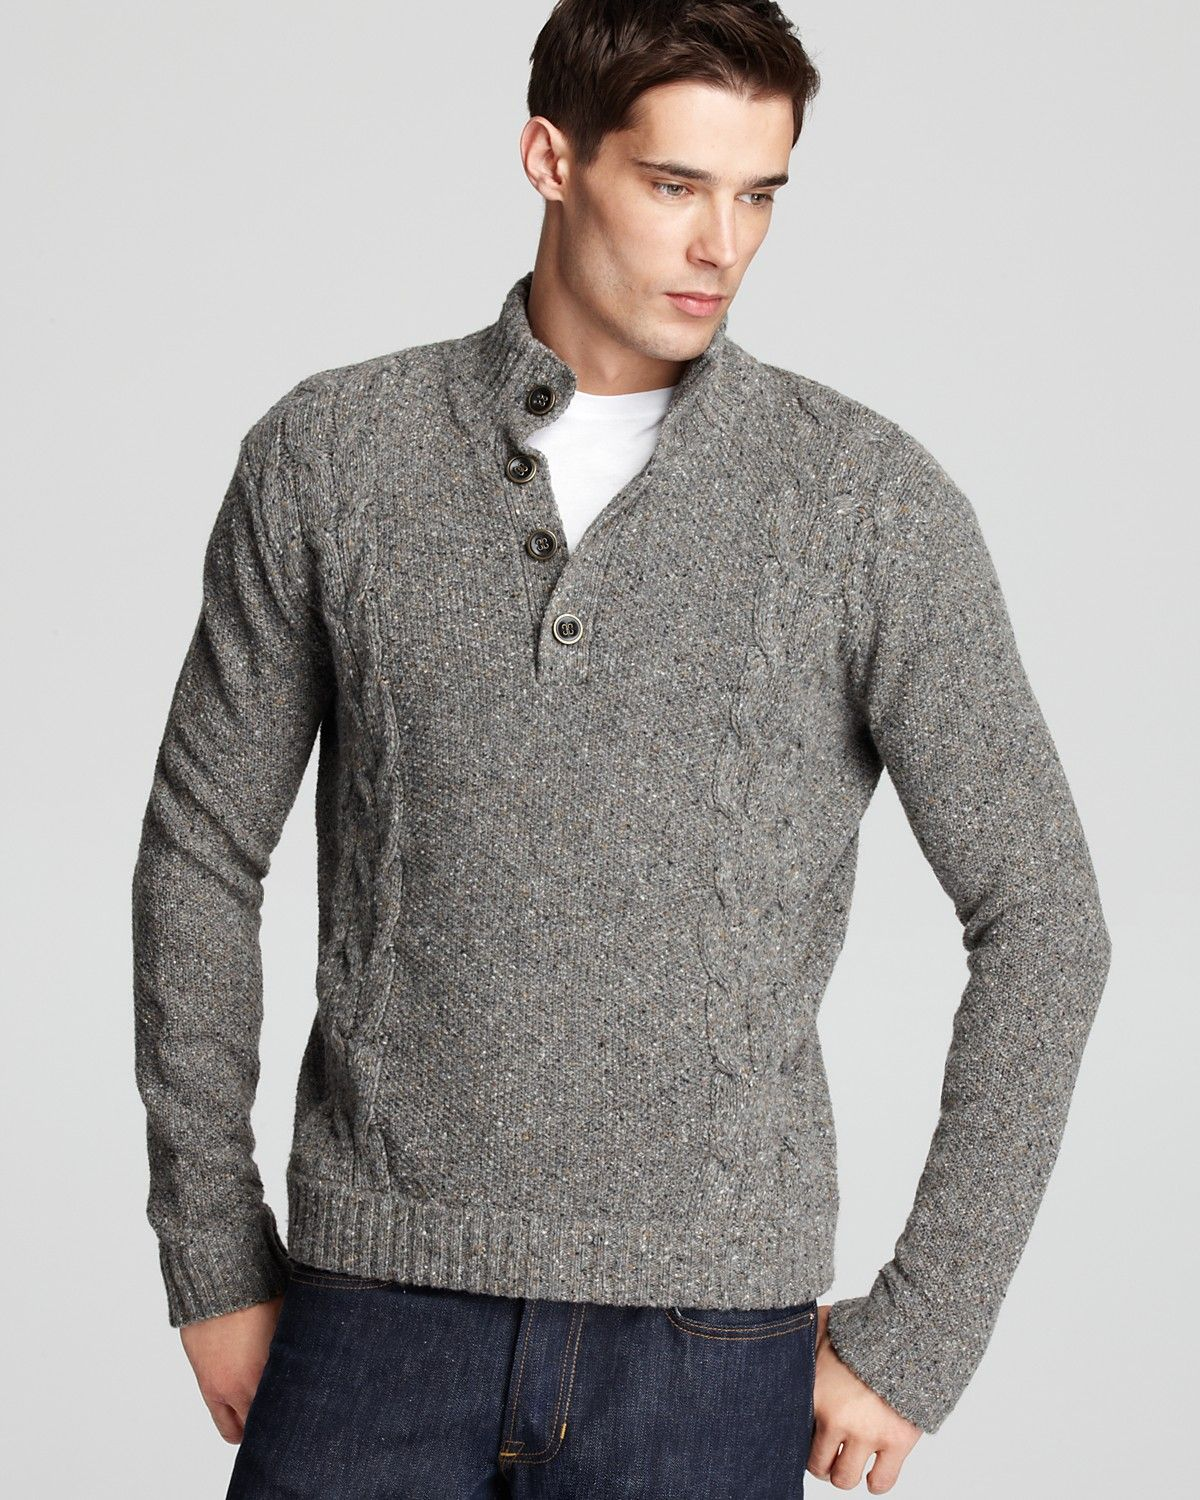 grey cable knit sweater men - Google Search